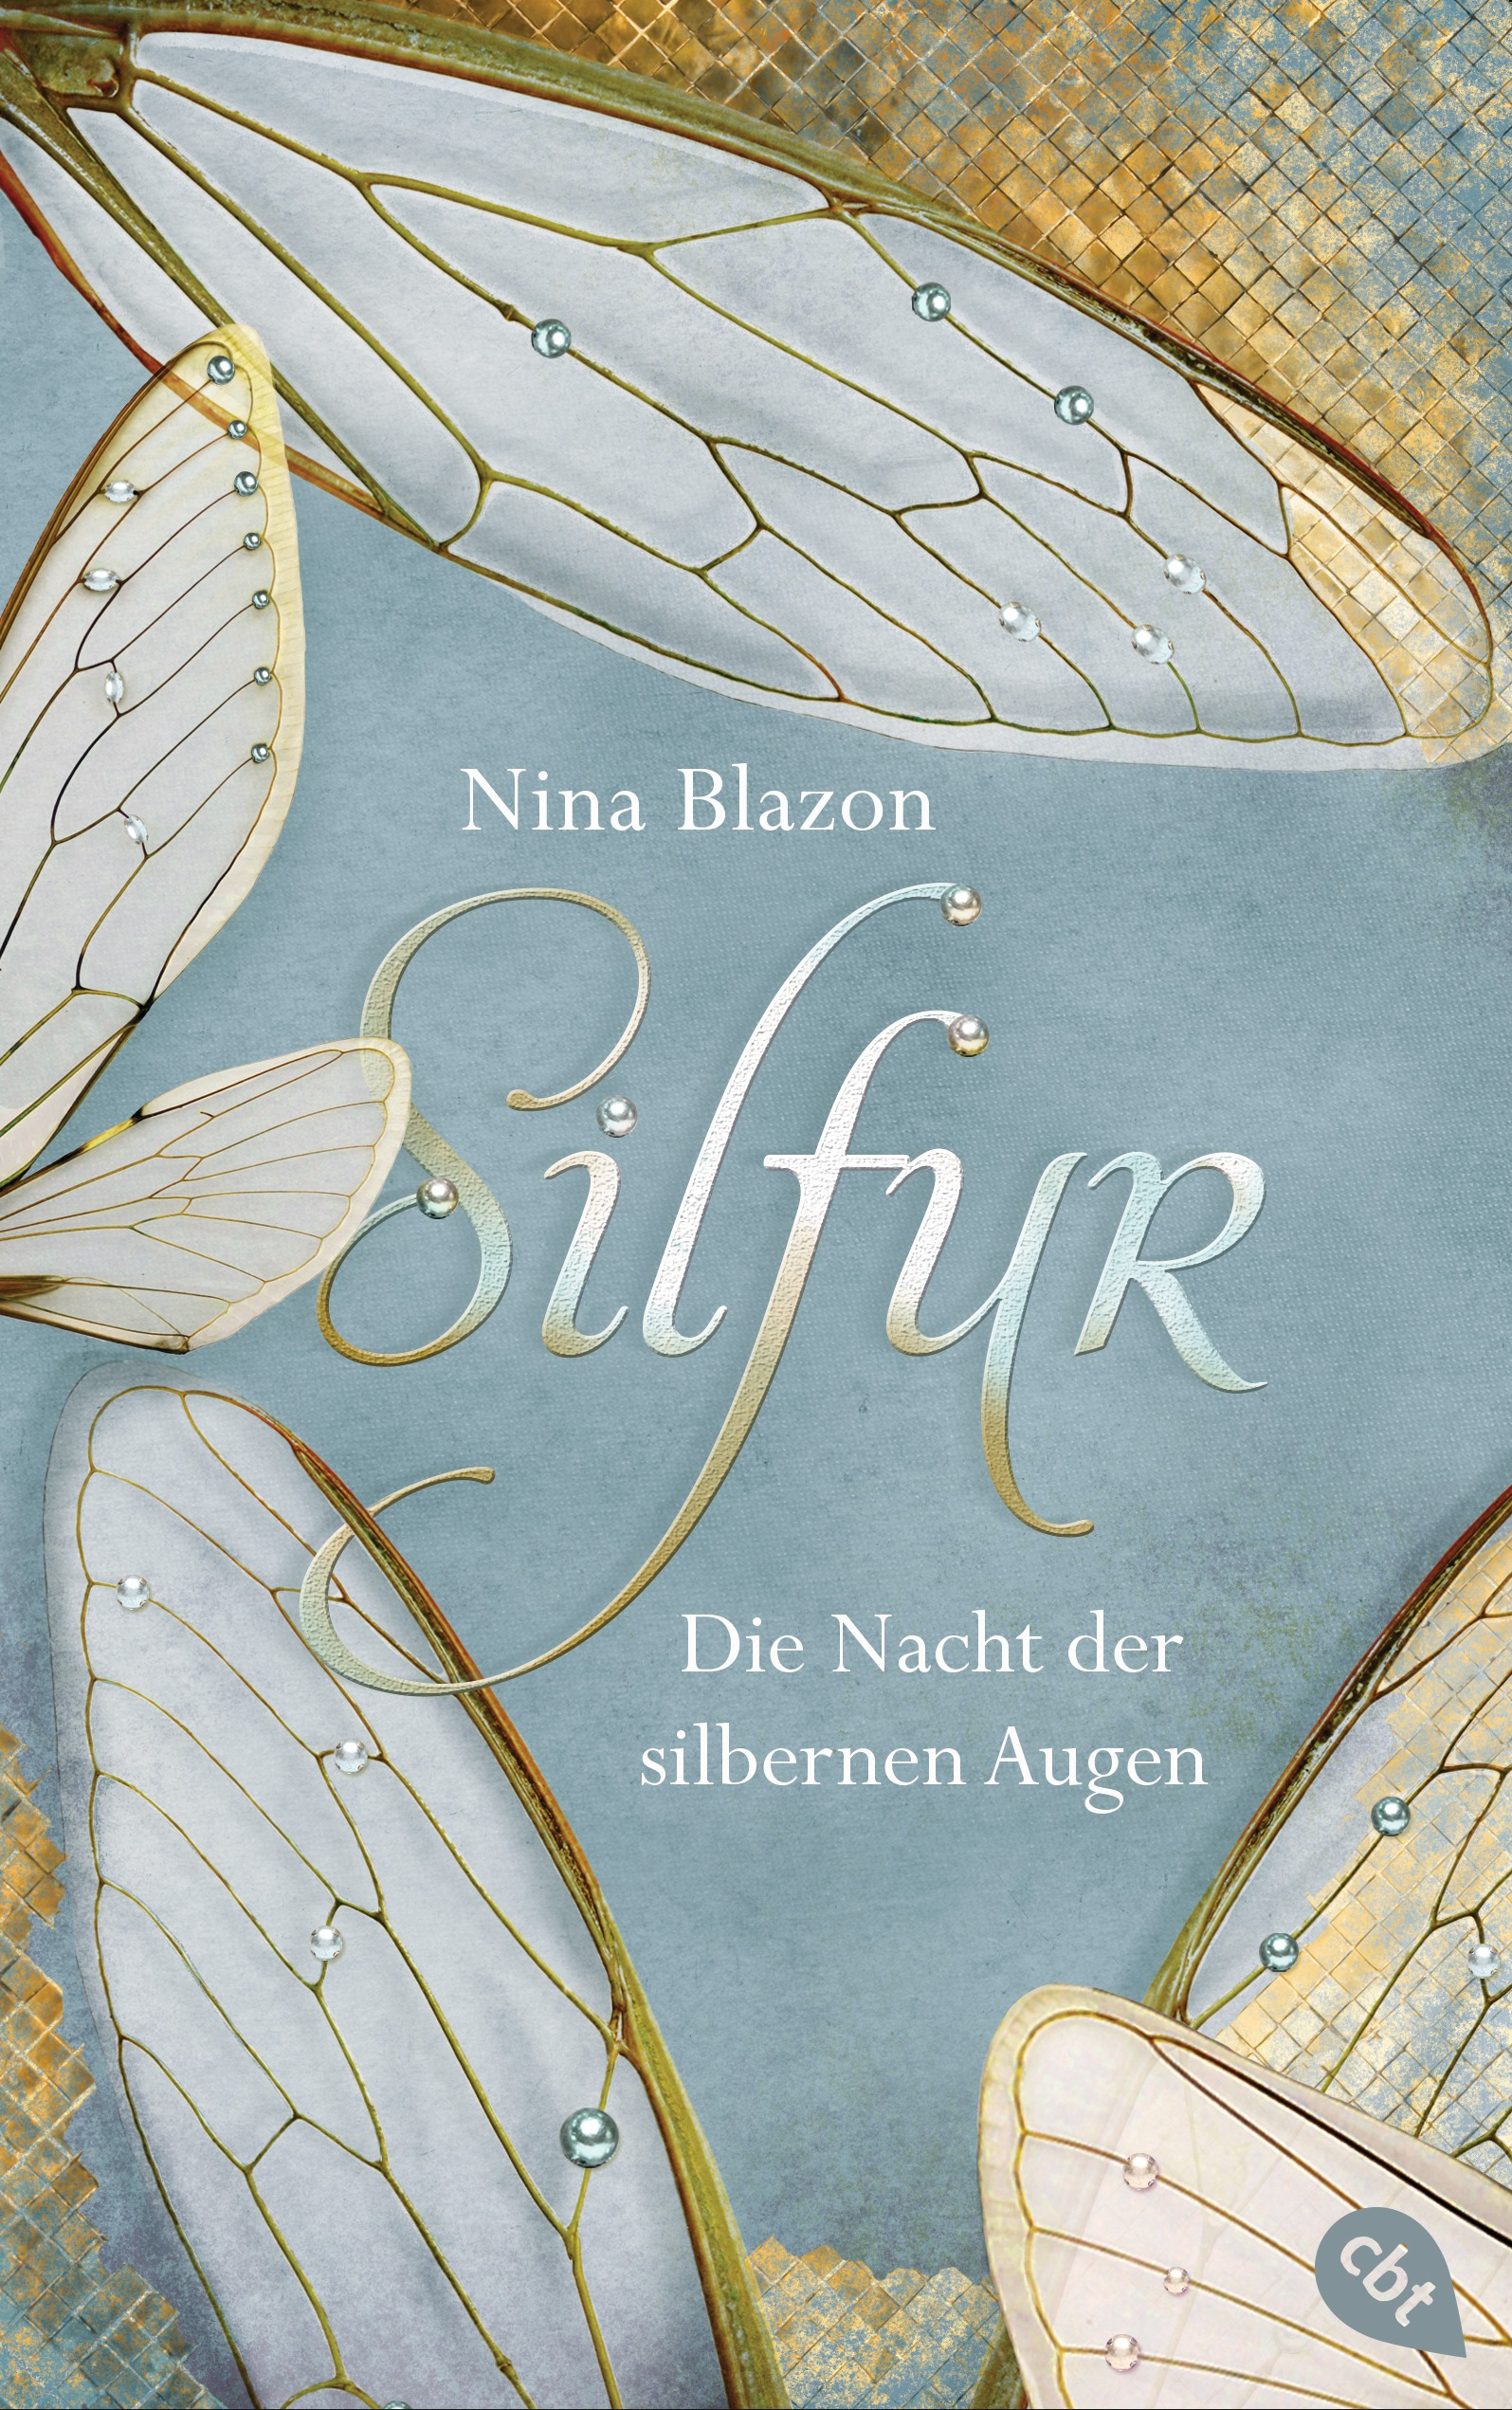 https://www.randomhouse.de/content/edition/covervoila_hires/Blazon_NSilfur-Die_Nacht_161407.jpg